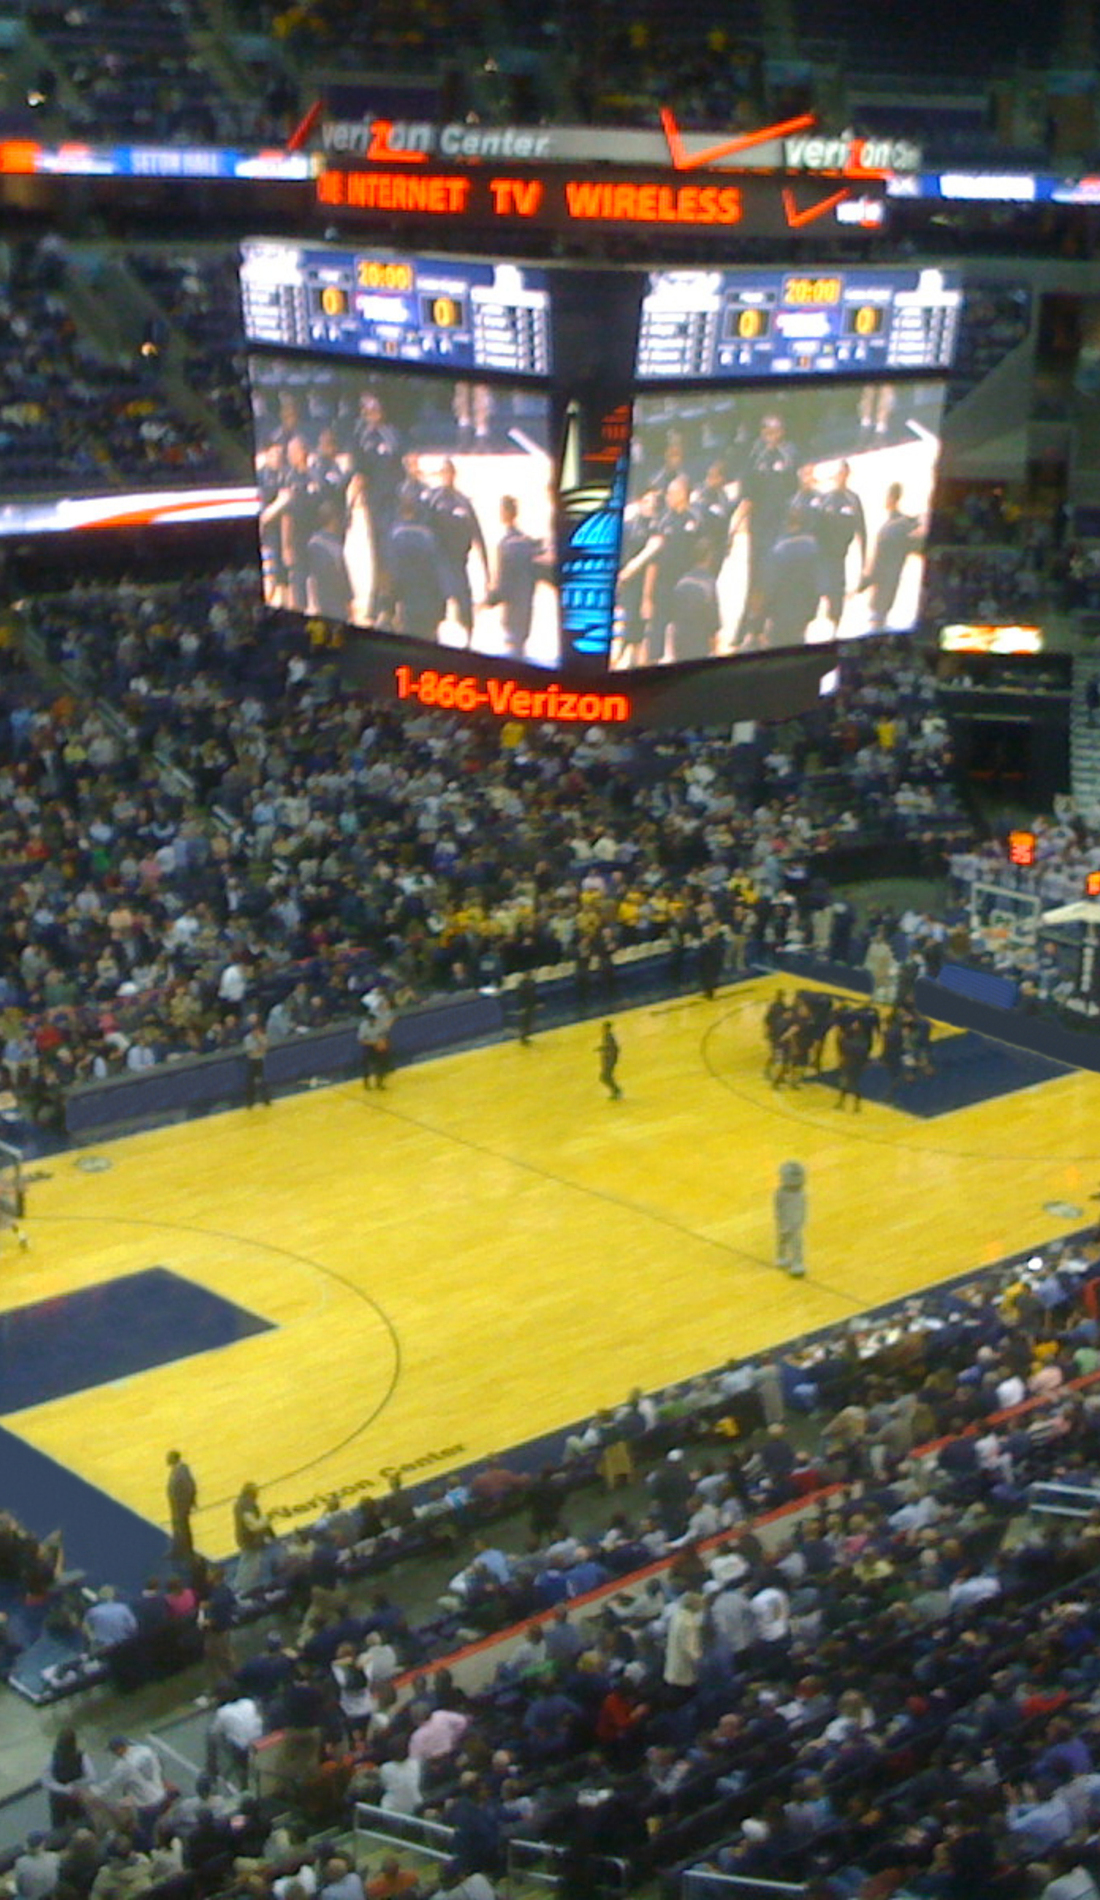 A Georgetown Hoyas Basketball live event